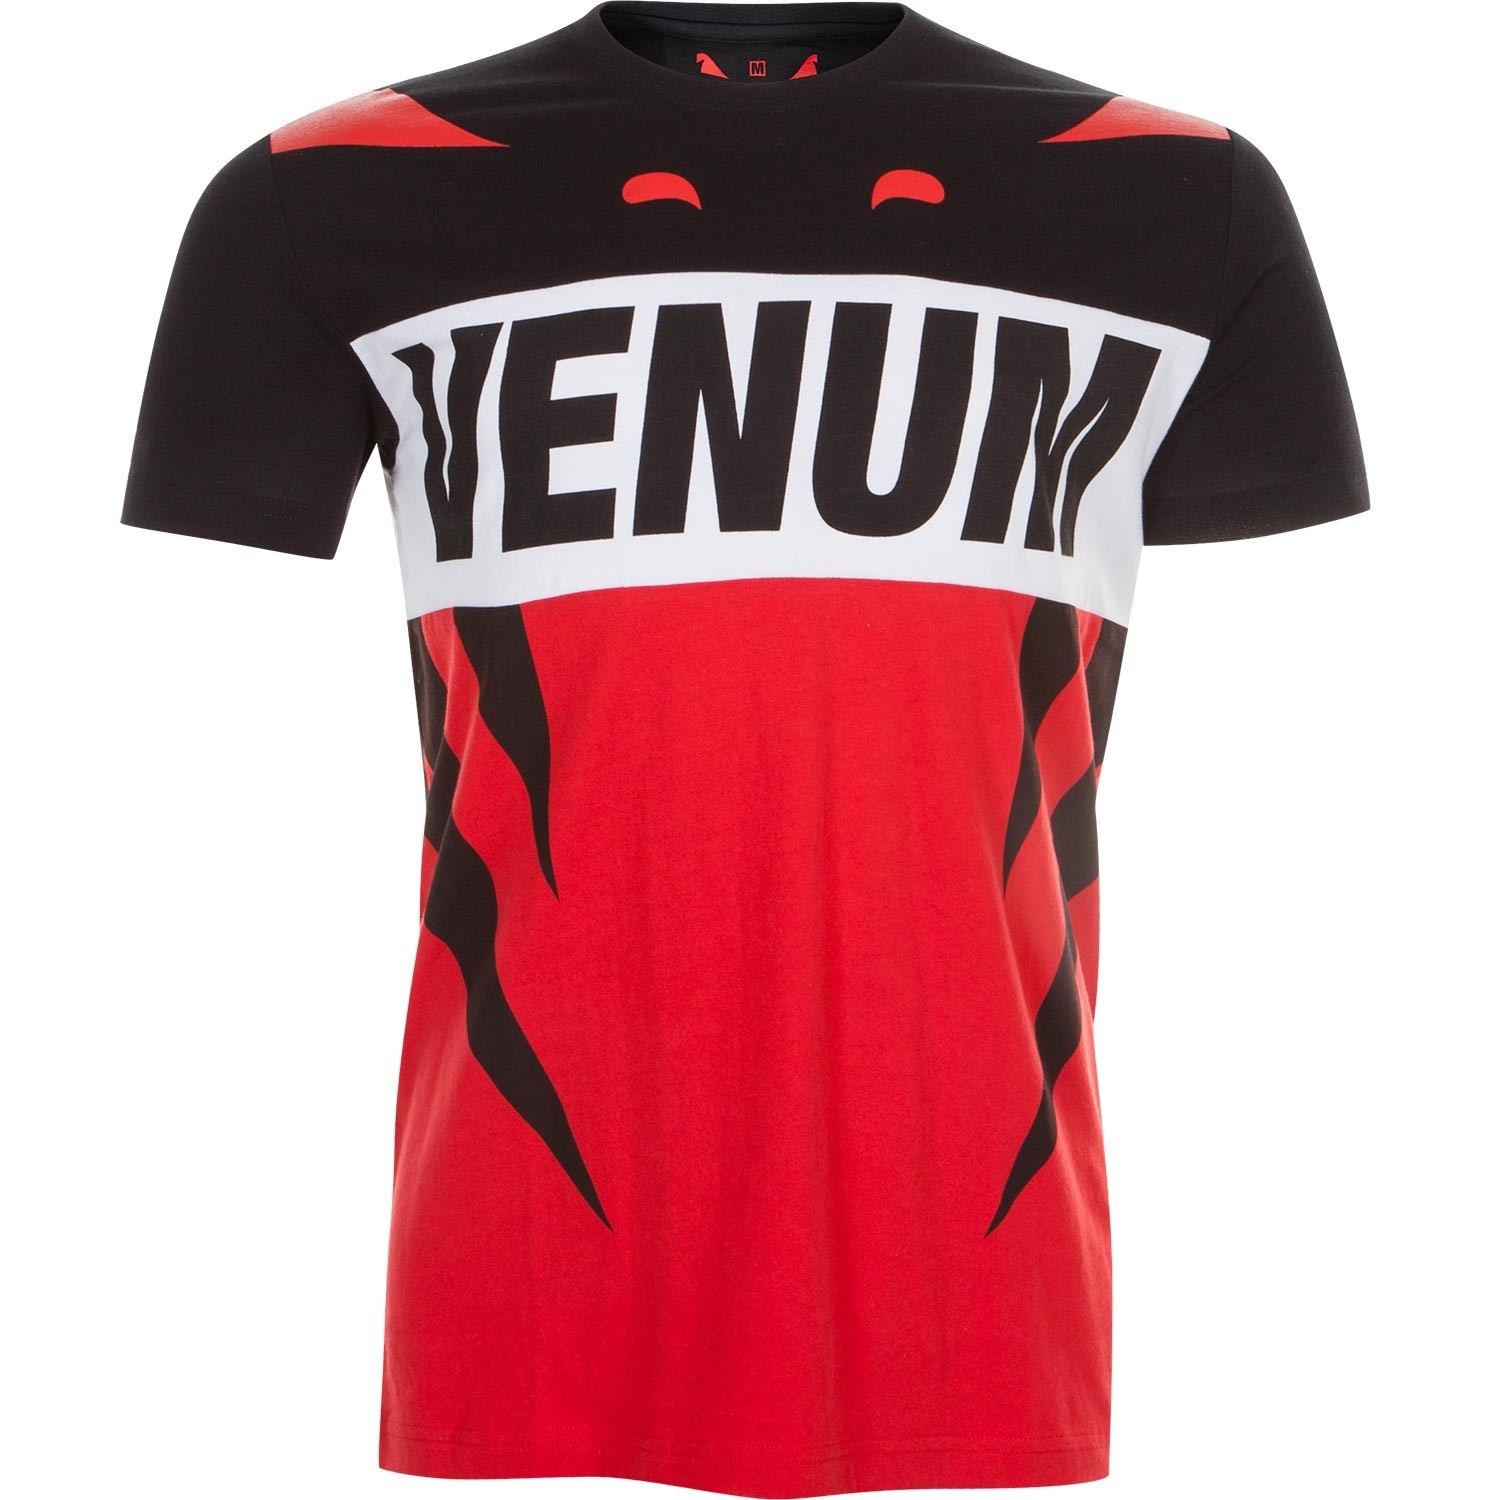 Футболка venum revenge t-shirt red black